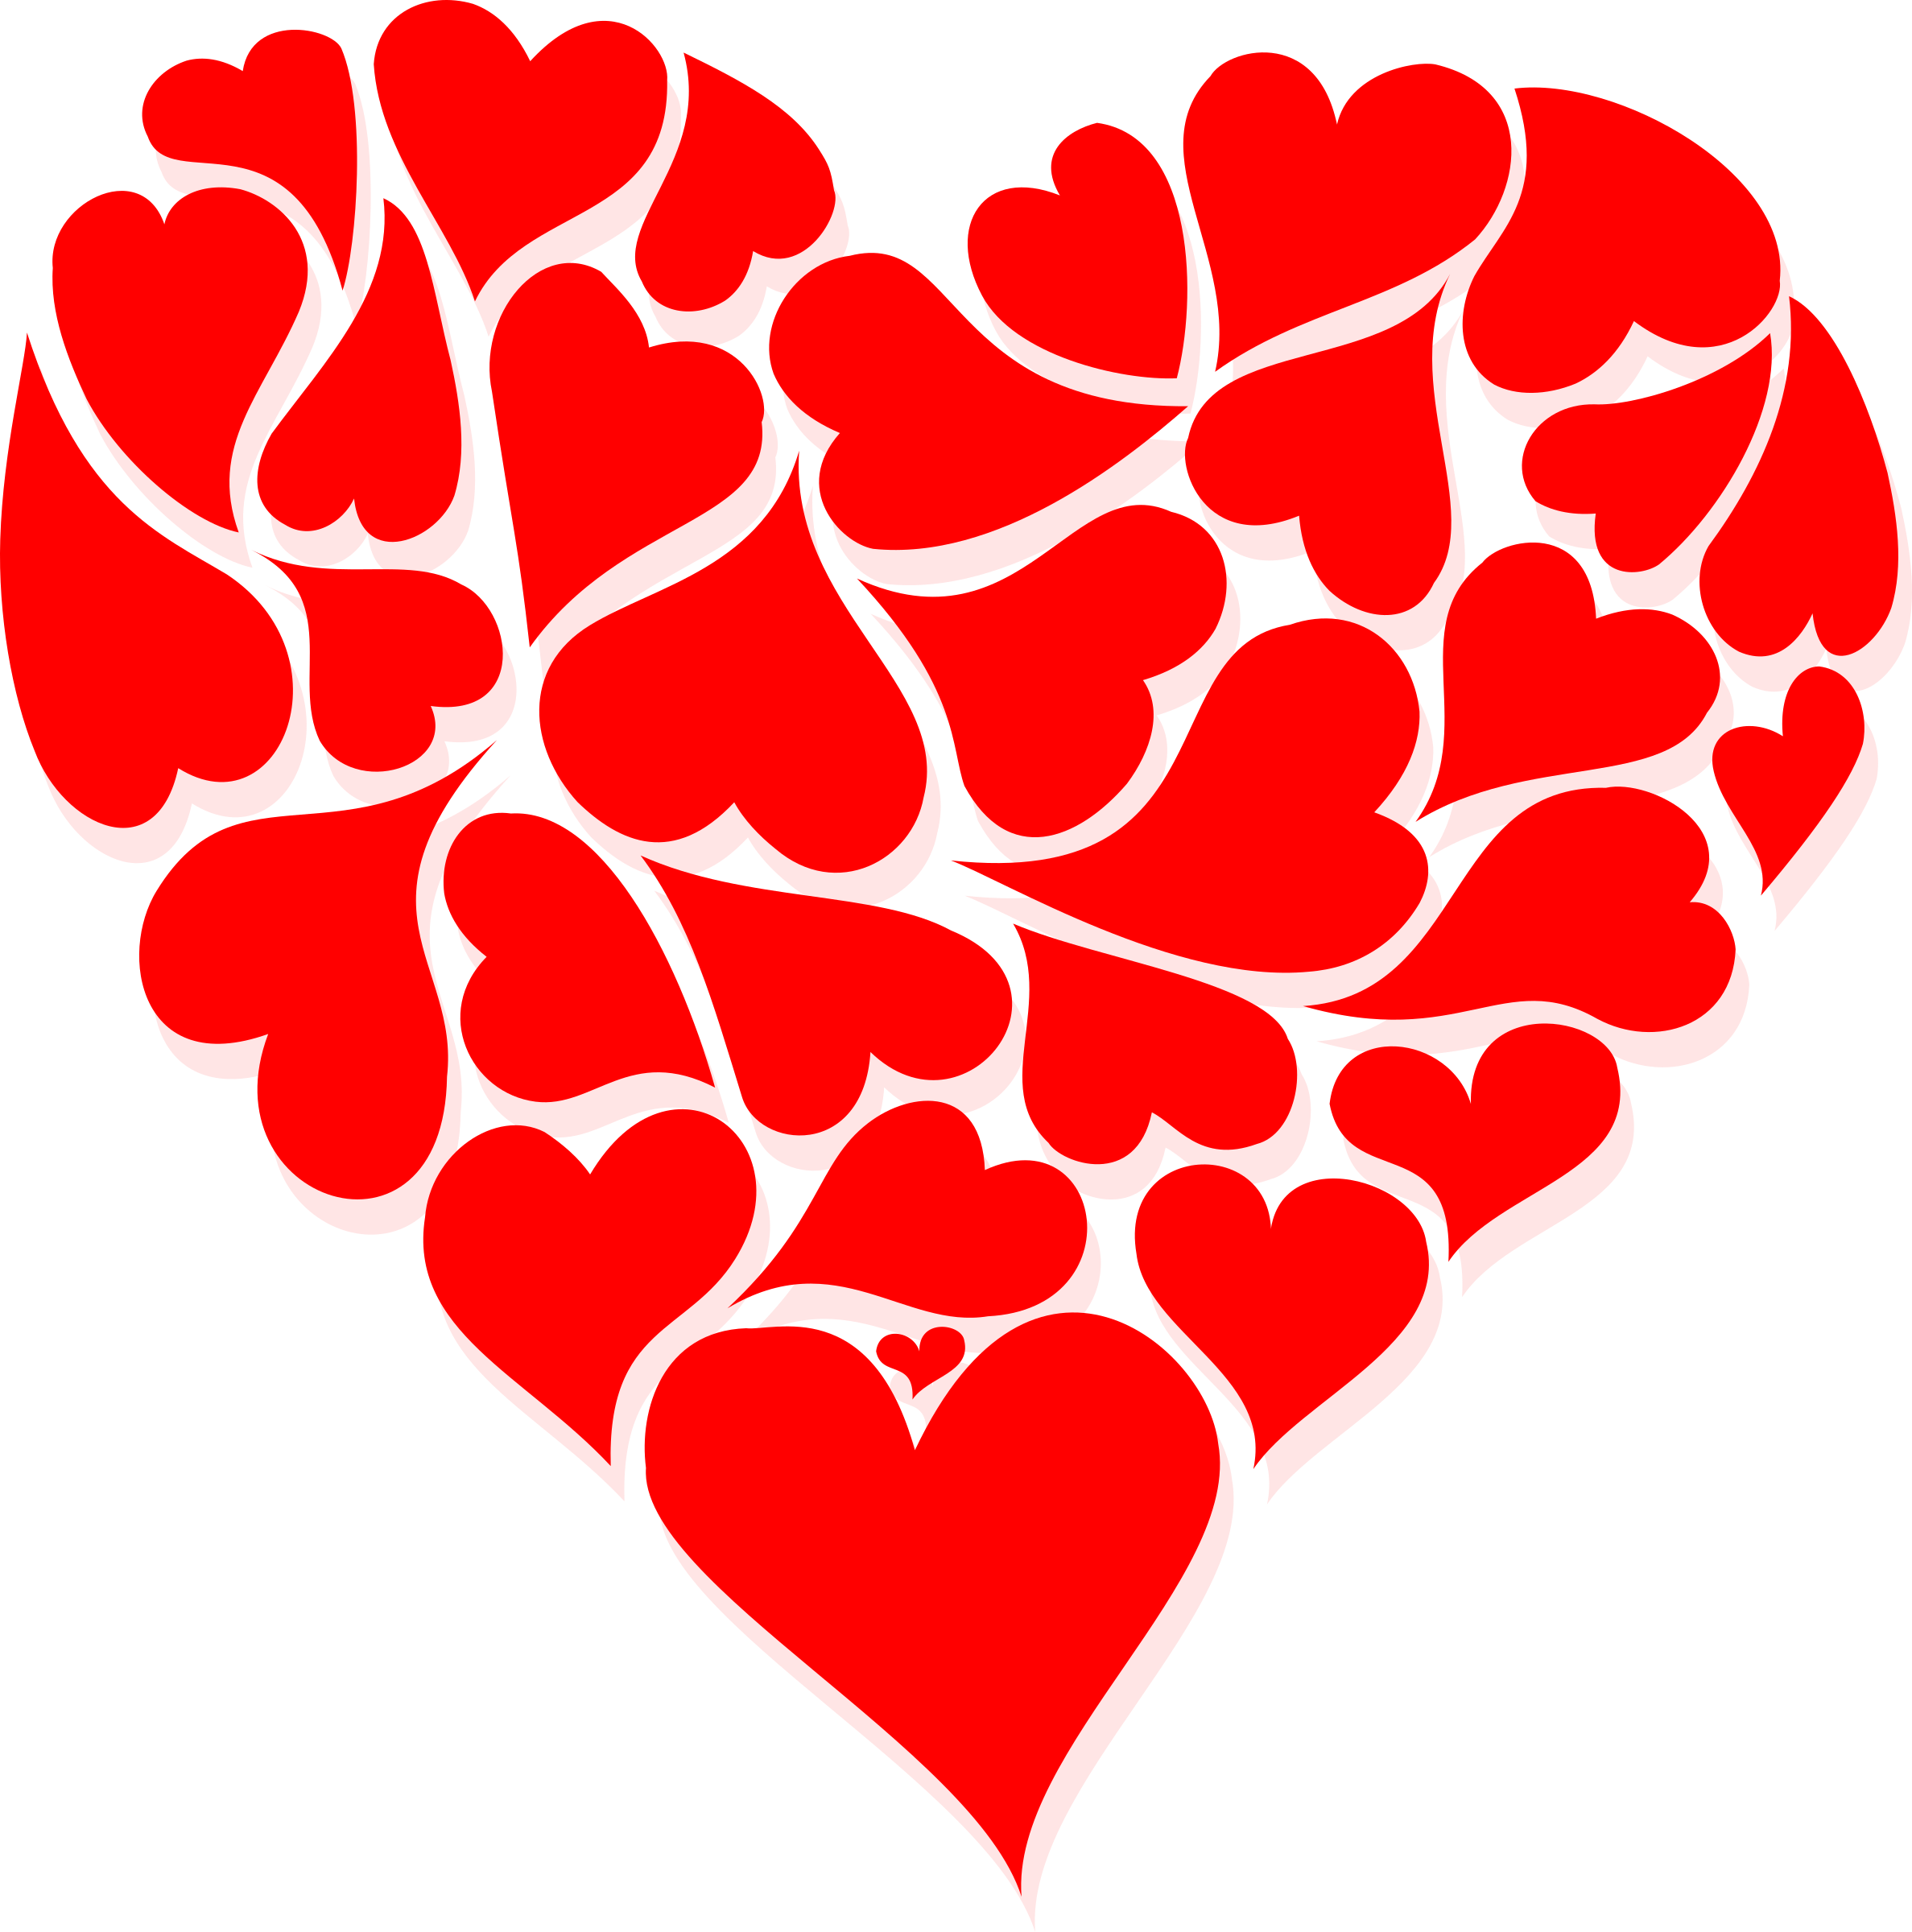 Valentines day family clipart.